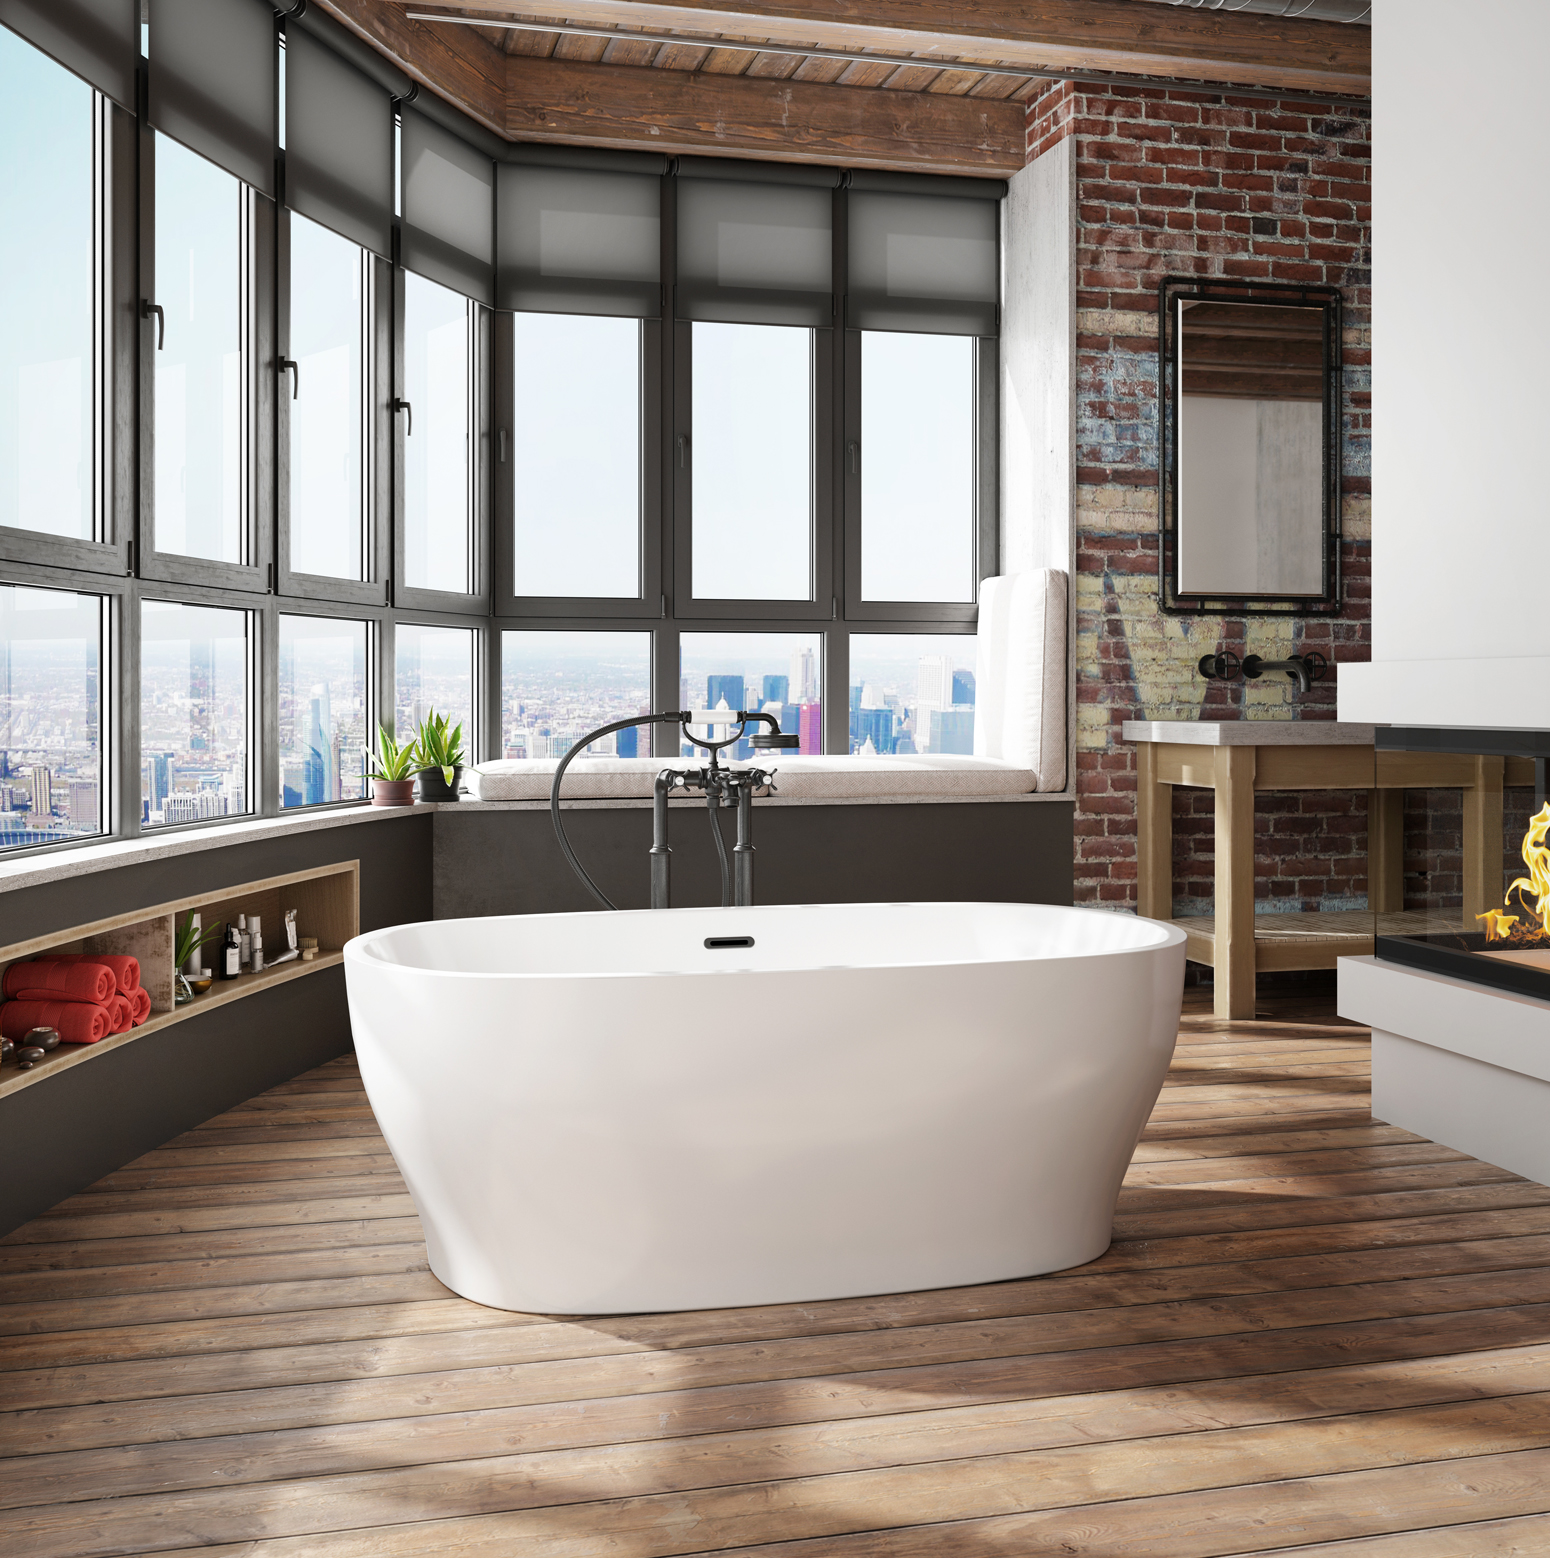 Vibe freestanding bathtub for your master bathroom